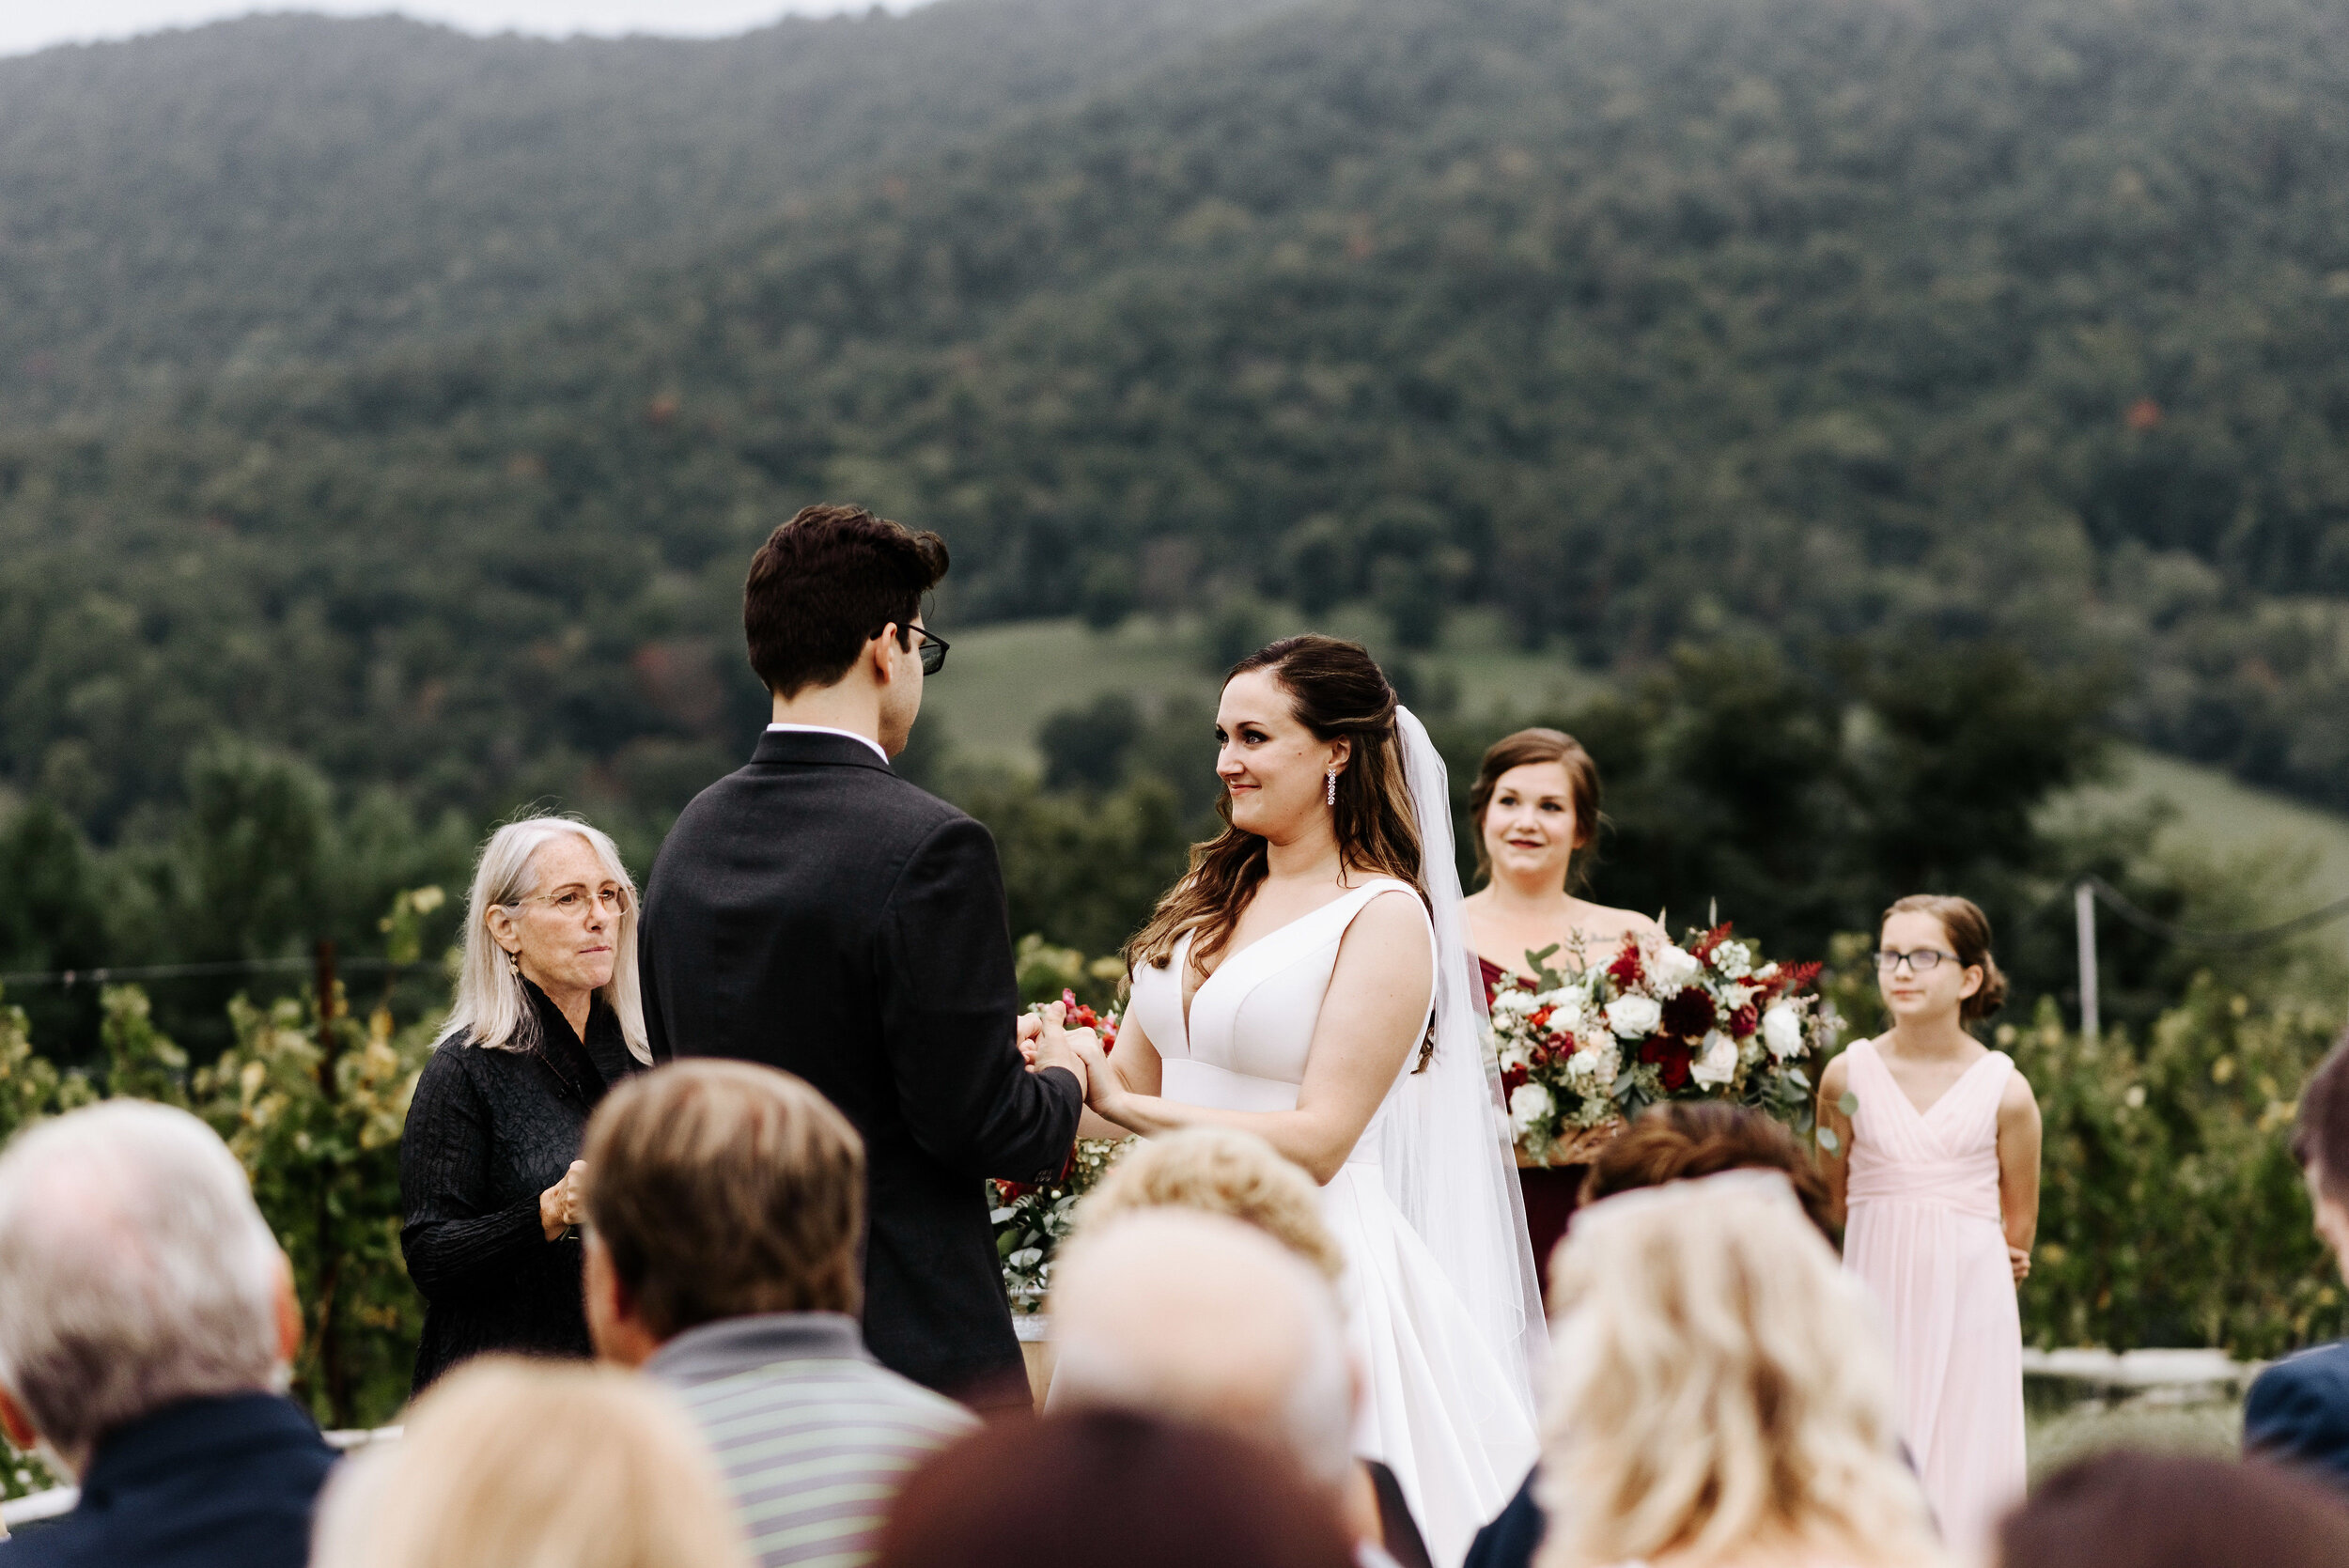 Allison_Nolan_Moss_Vineyards_Wedding_Charlottesville_Virginia_Photography_by_V_46.jpg